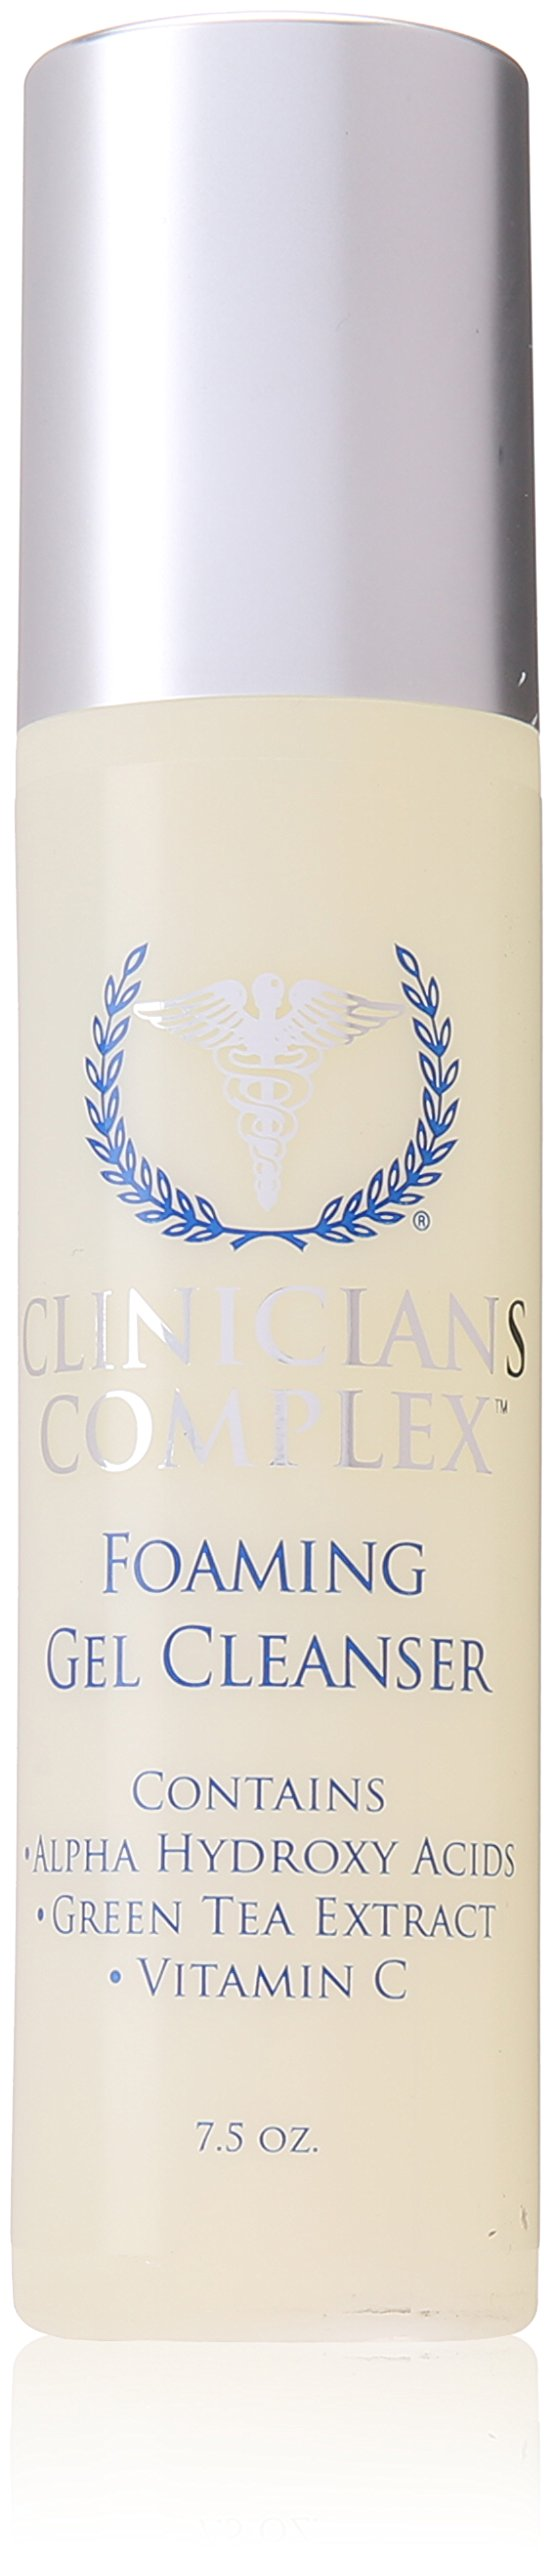 Foaming Gel Clinicians Complex Cleanser